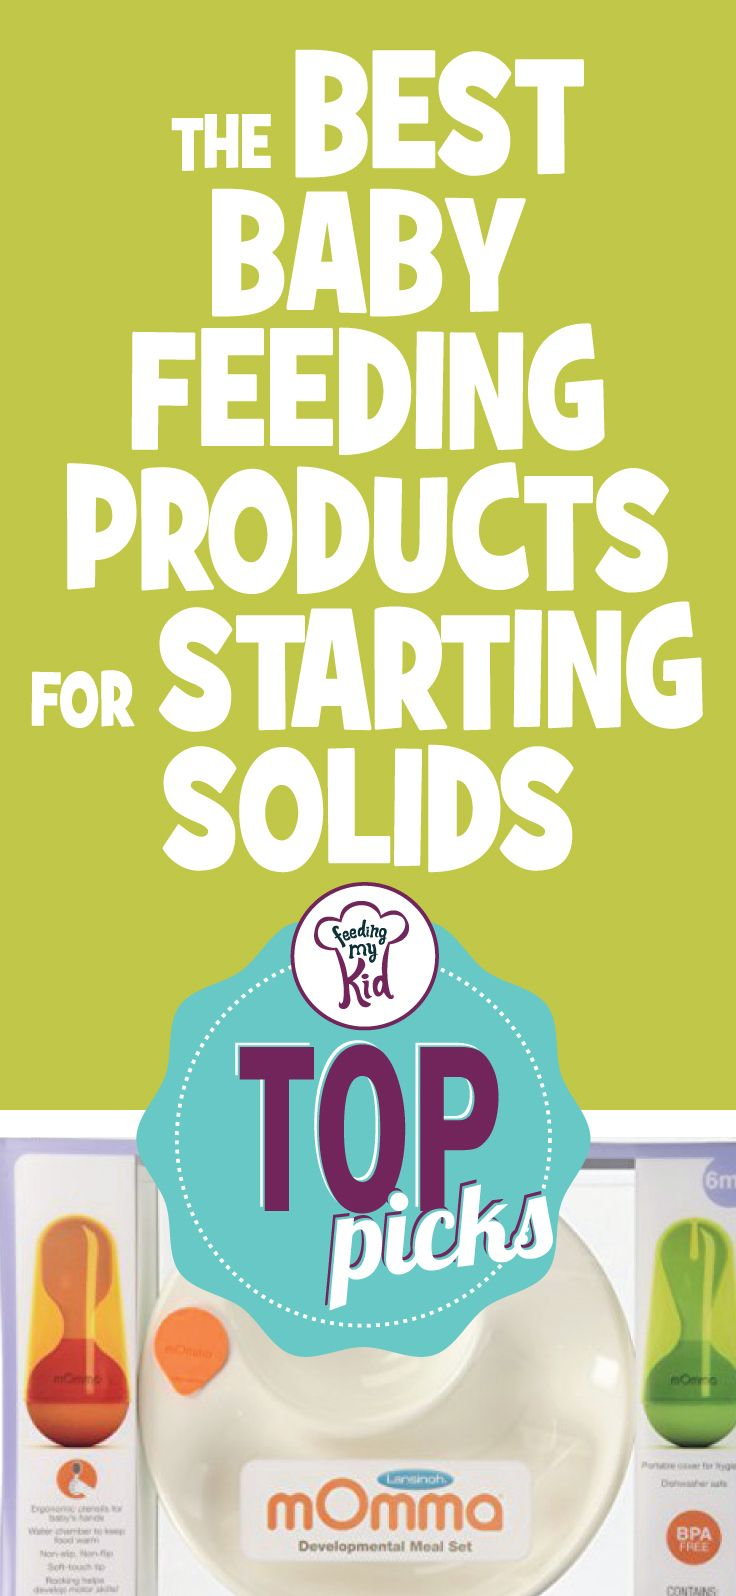 Top Picks The Best Baby Feeding Products For Starting